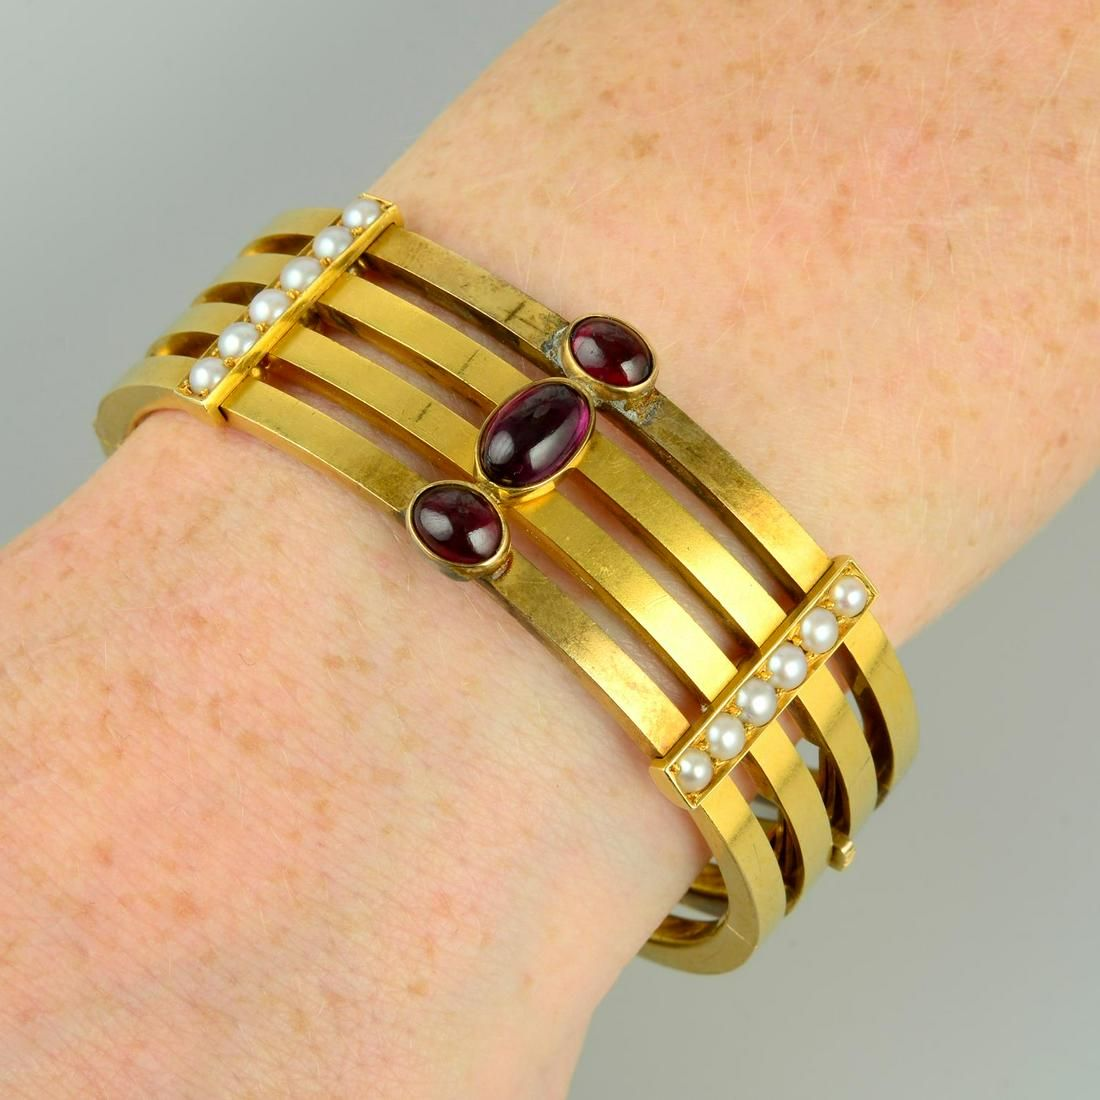 A late Victorian 15ct gold four-row hinged bangle, with